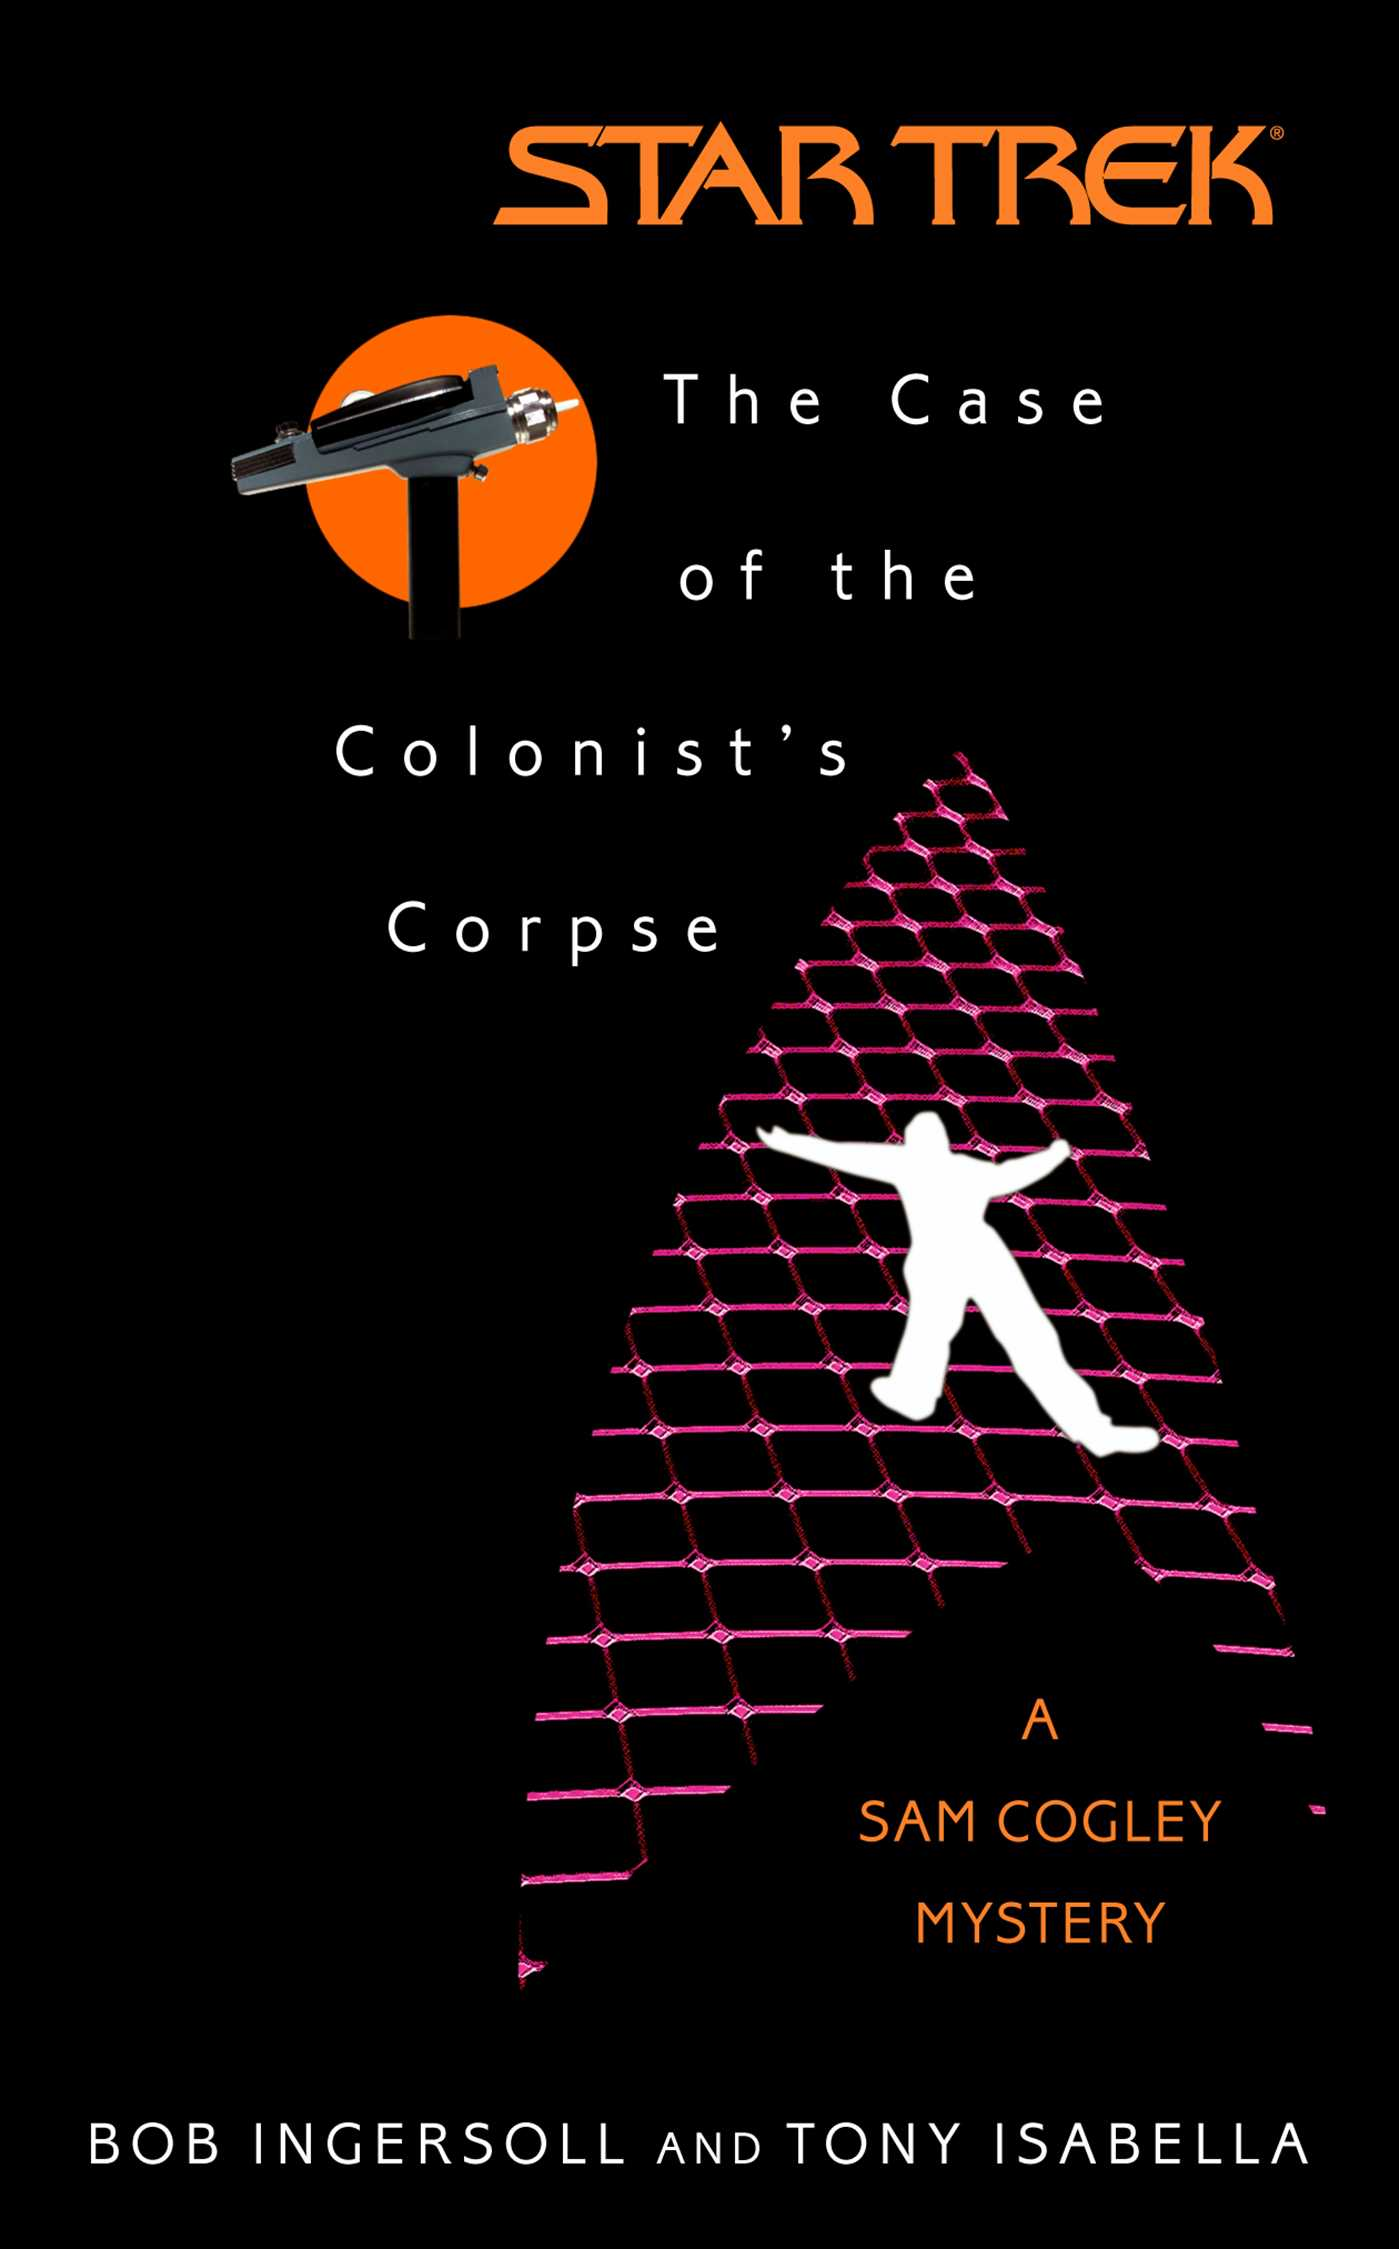 The-star-trek-the-original-series-the-case-of-the-colonists-corpse-9780743464987_hr